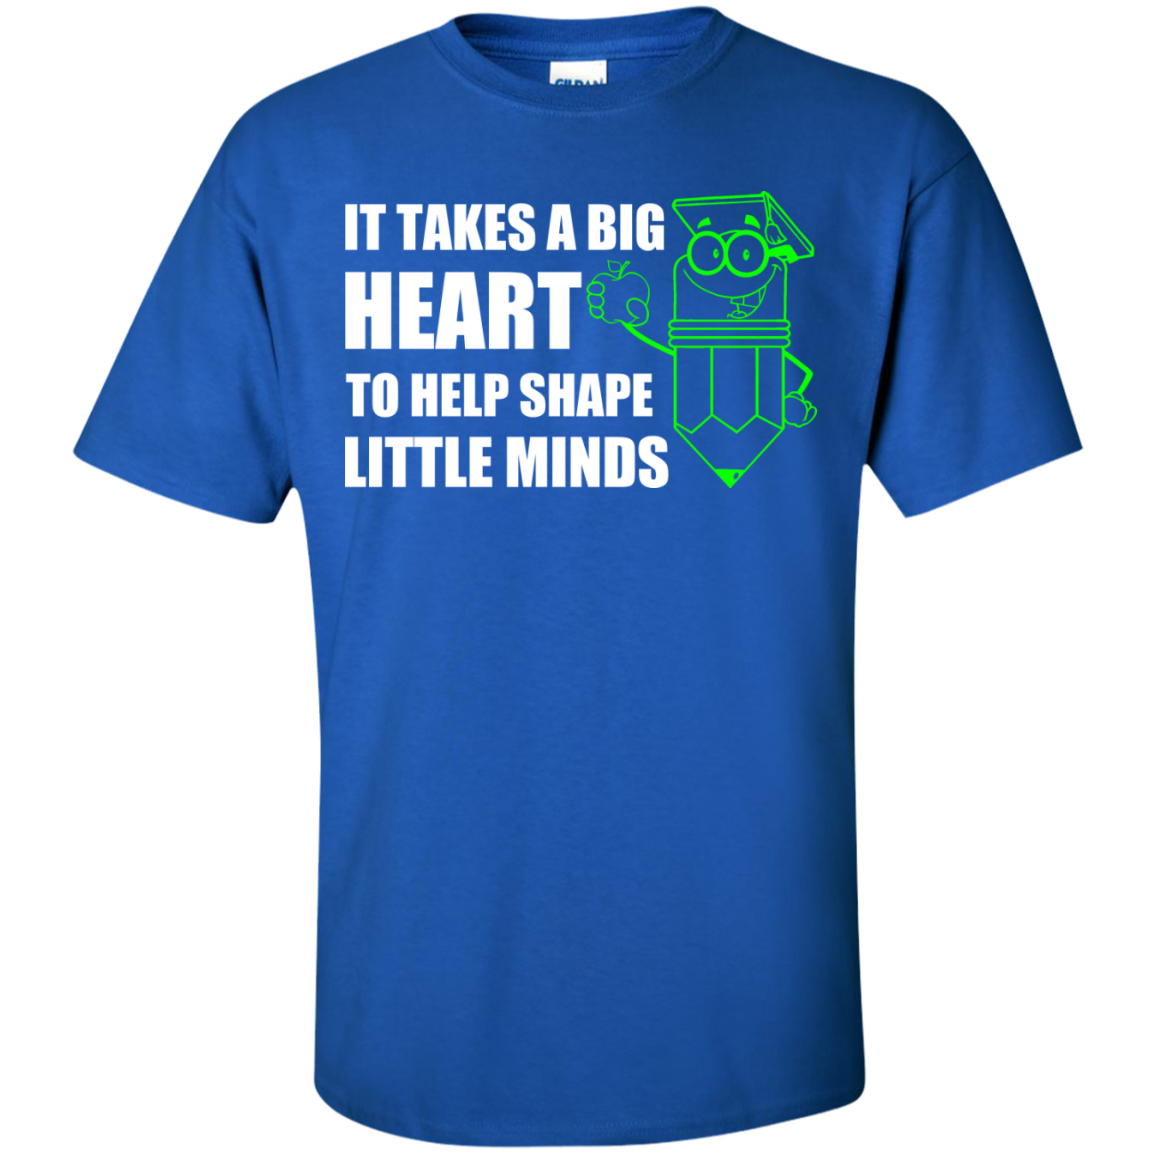 It Takes A Big Heart To Help Shape Little Minds Shirt - The Sun Cat